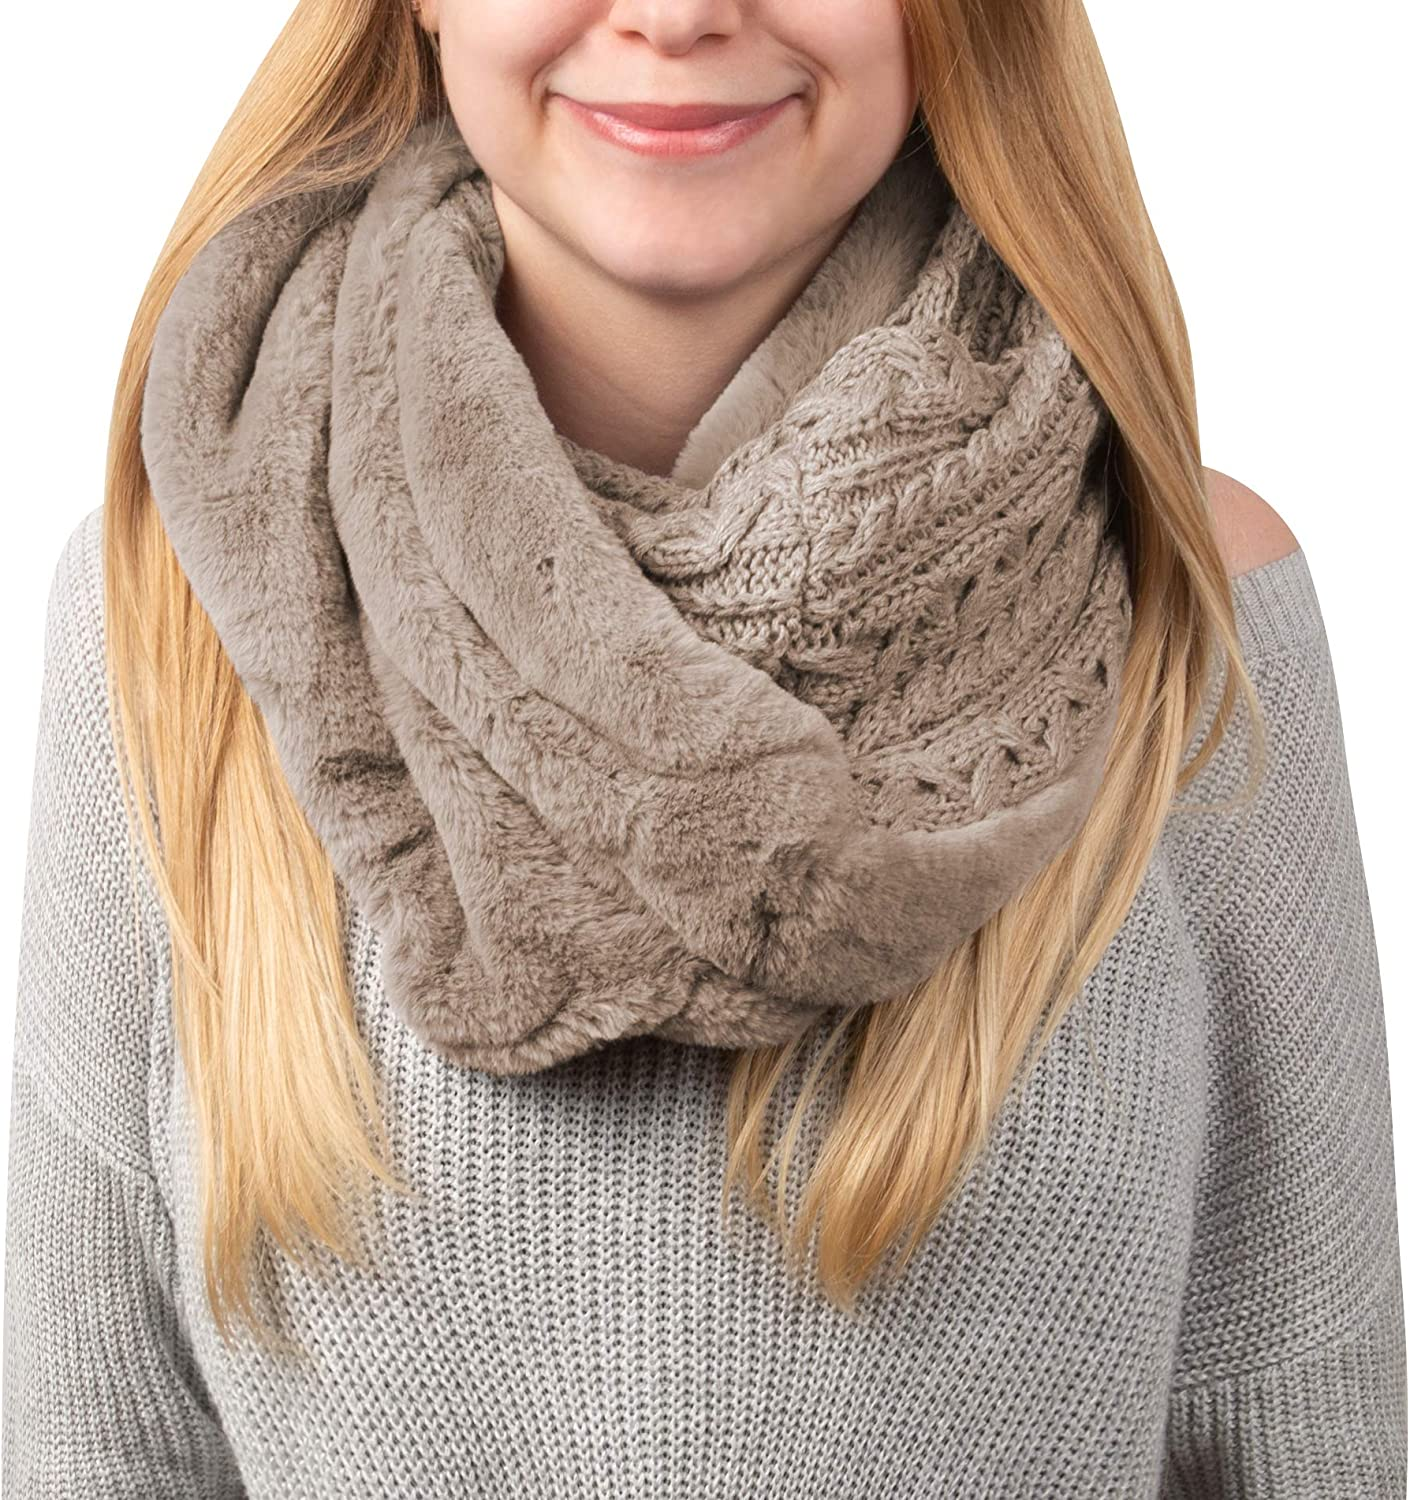 Pavilion Gift Company Soft Beige-Cable Knit & Faux Fur Infinity Scarf, Brown, One Size